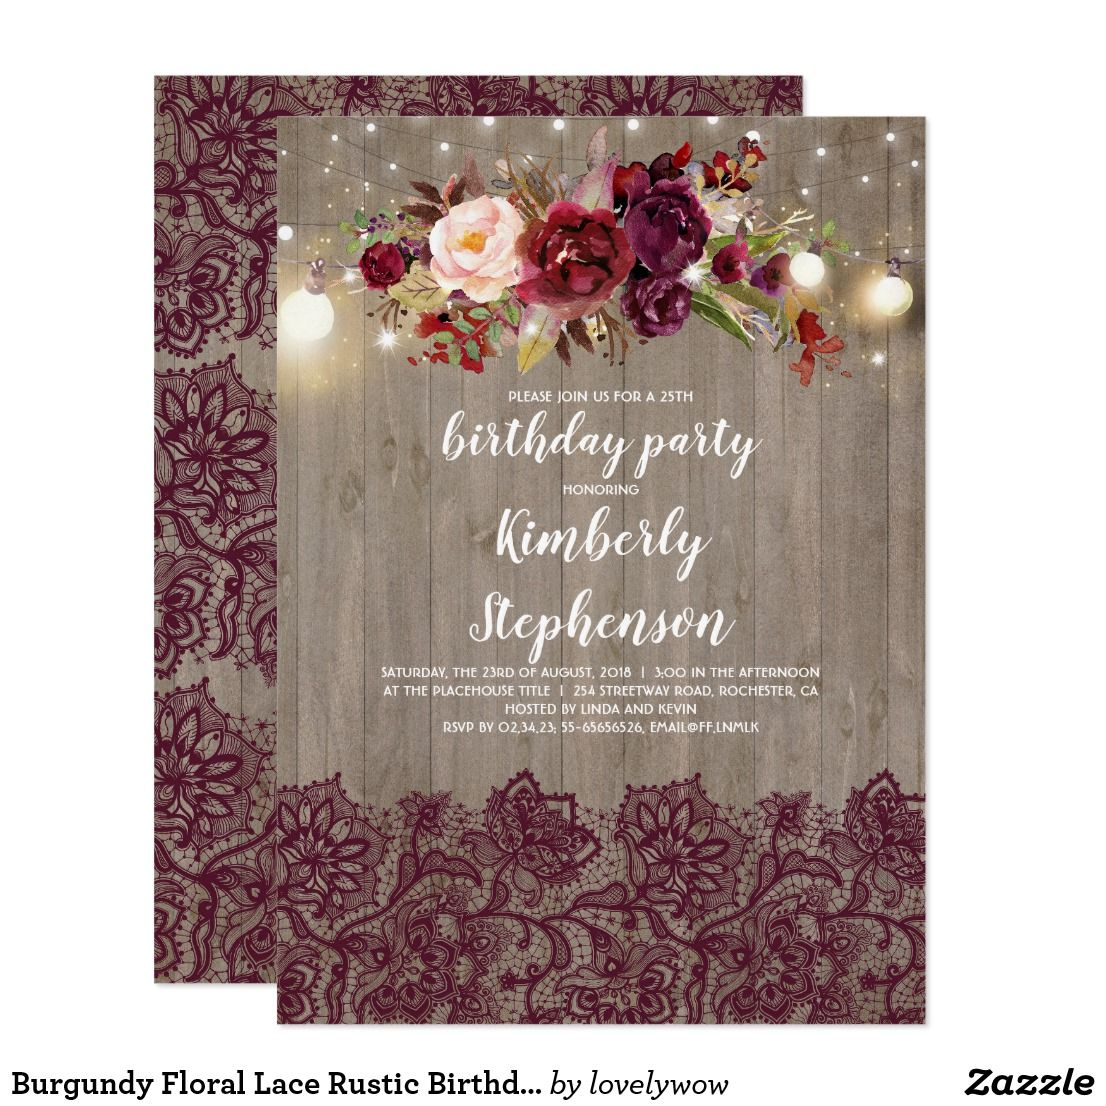 Burgundy Floral Lace Rustic Birthday Party Invitation